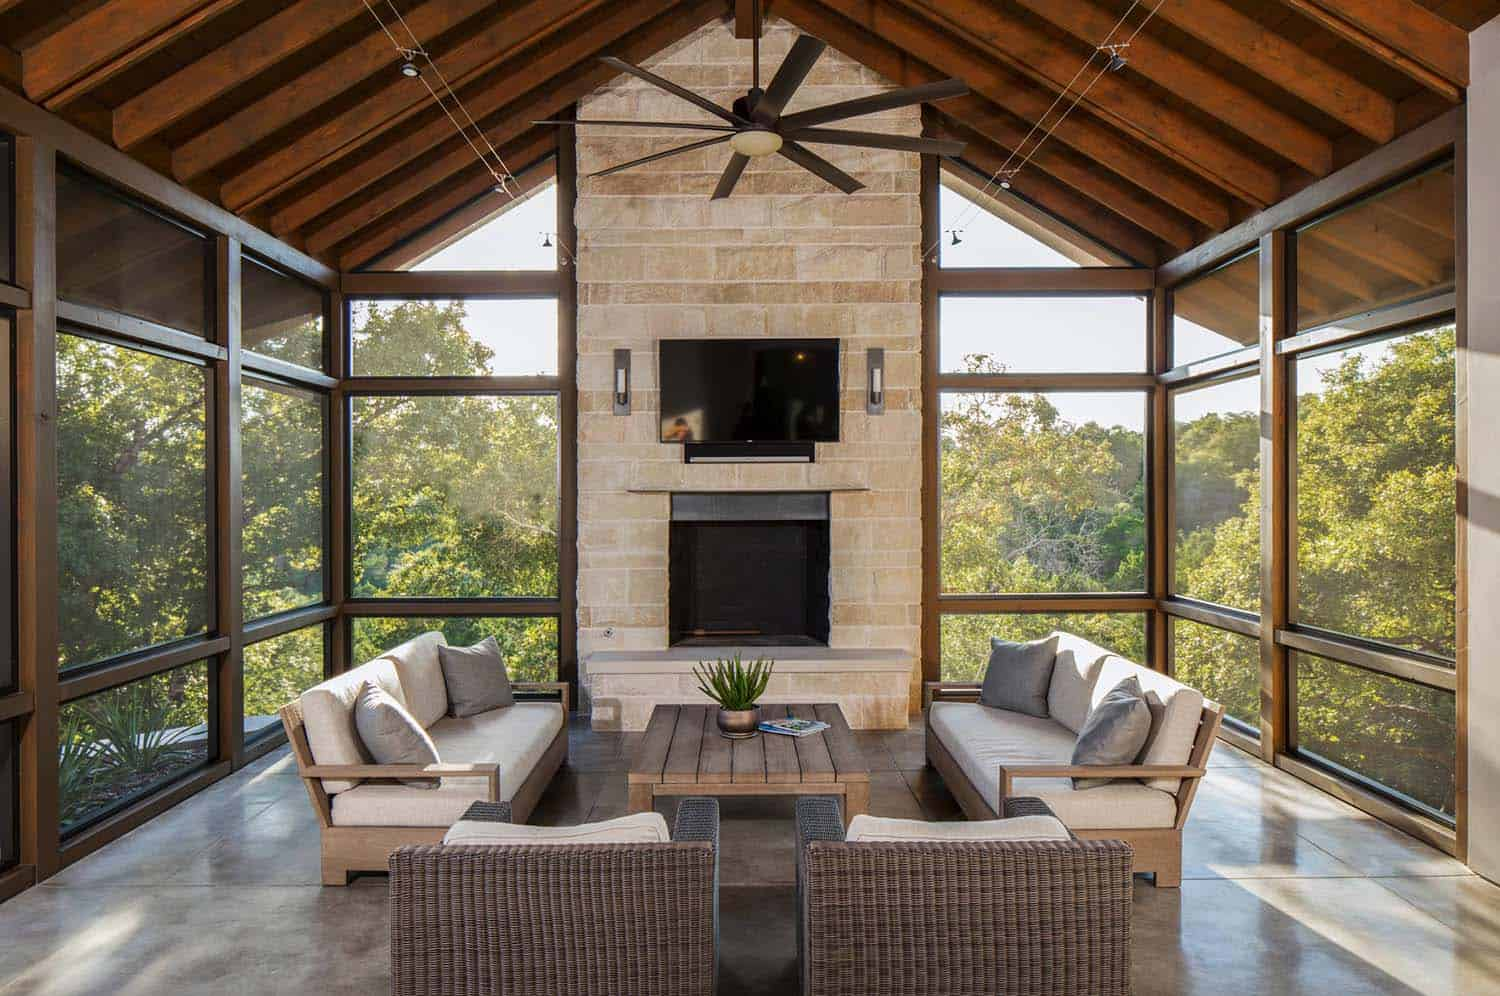 38 amazingly cozy and relaxing screened porch design ideas for Screen room plans